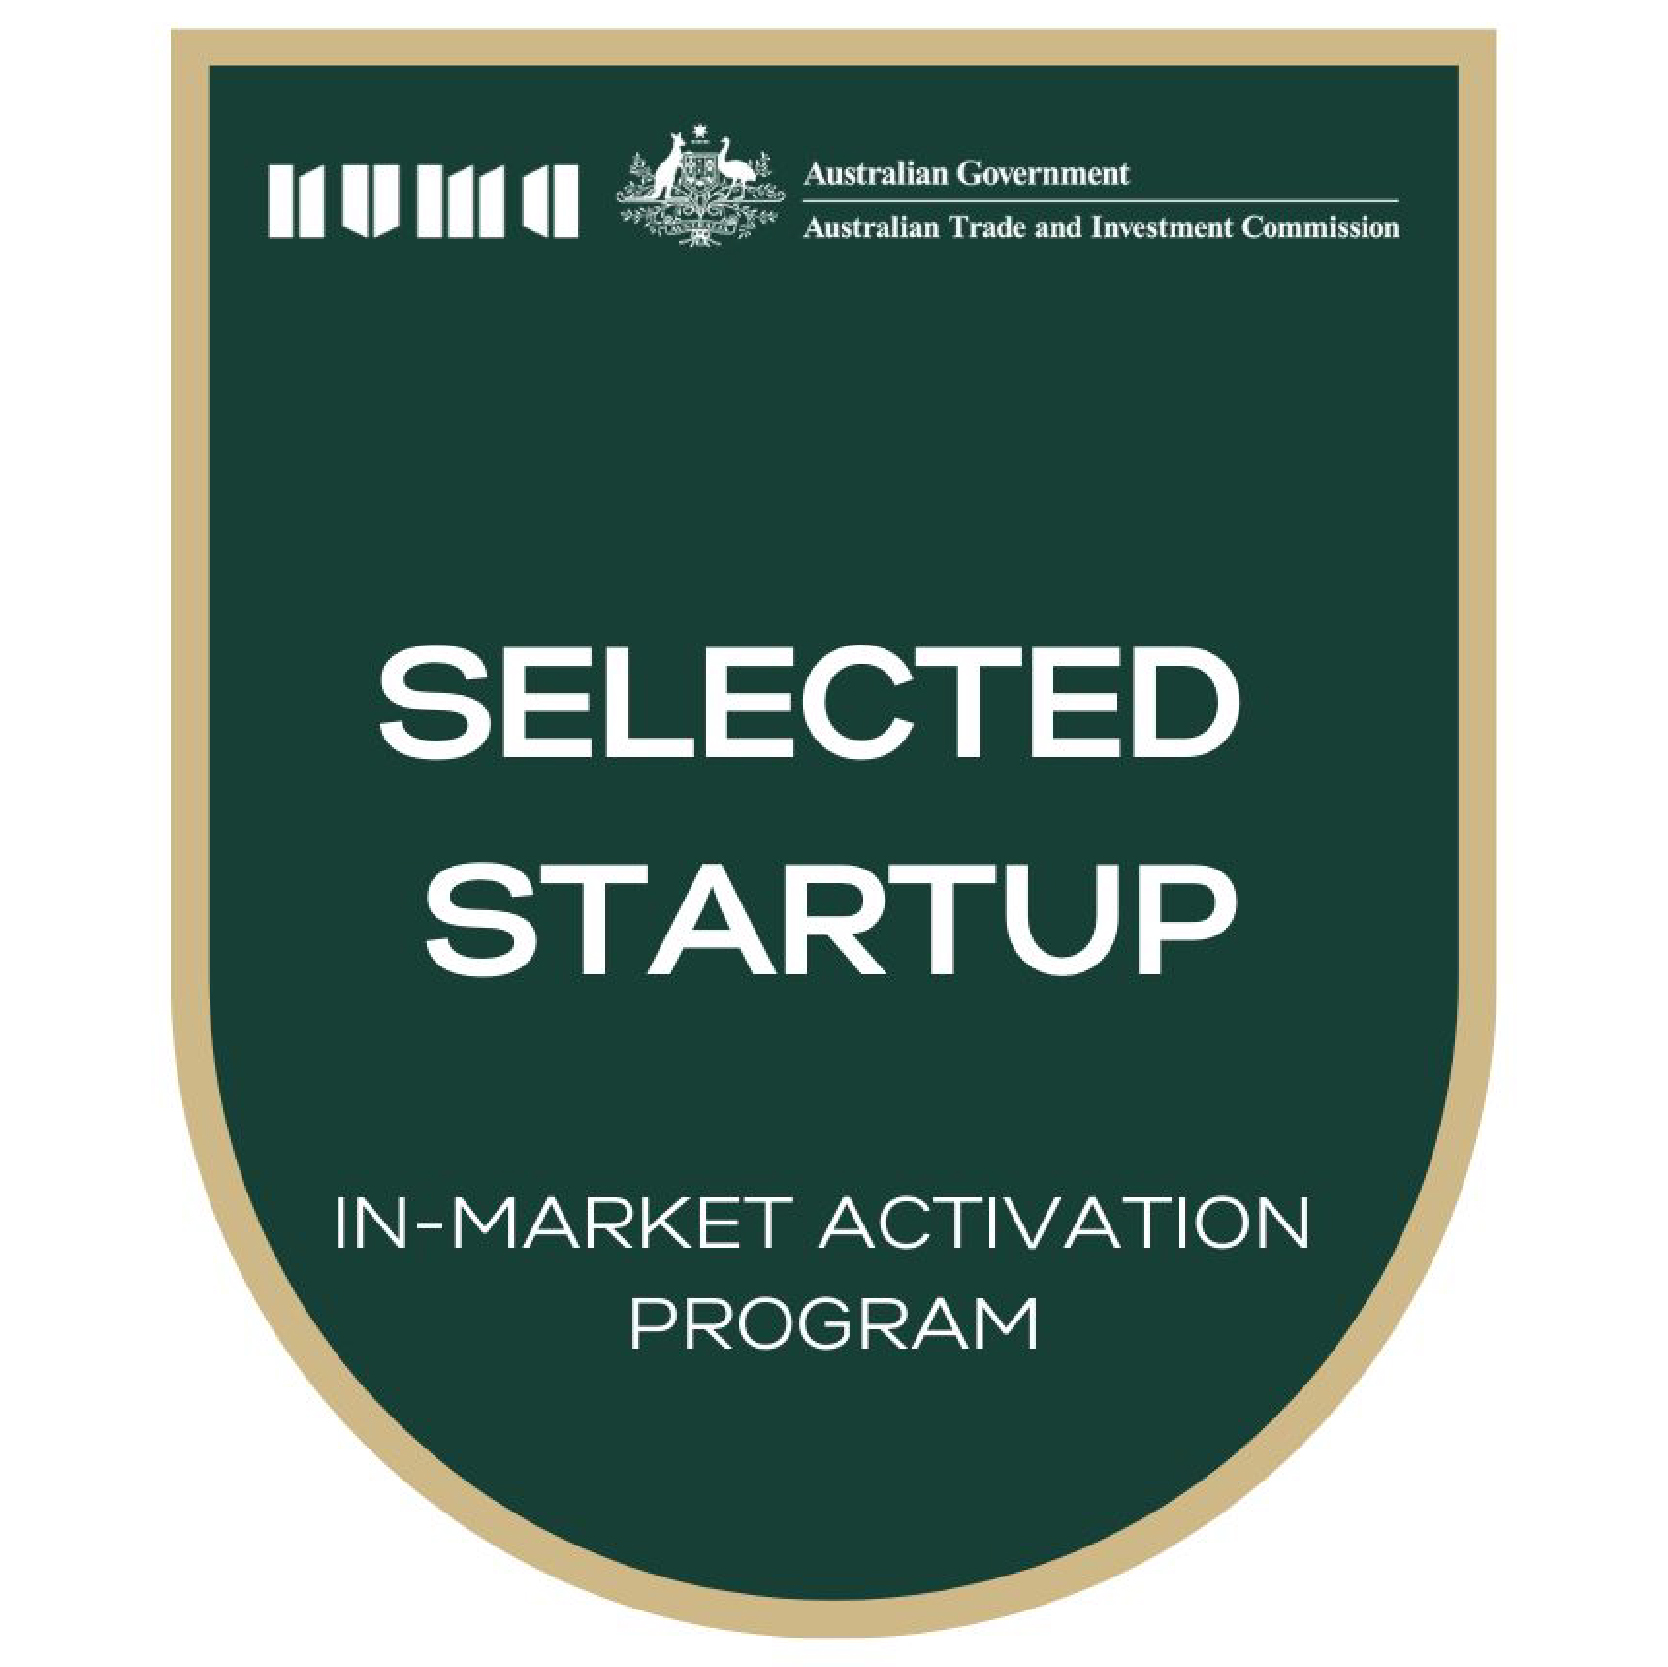 Cognitive View Australia Selected Startup